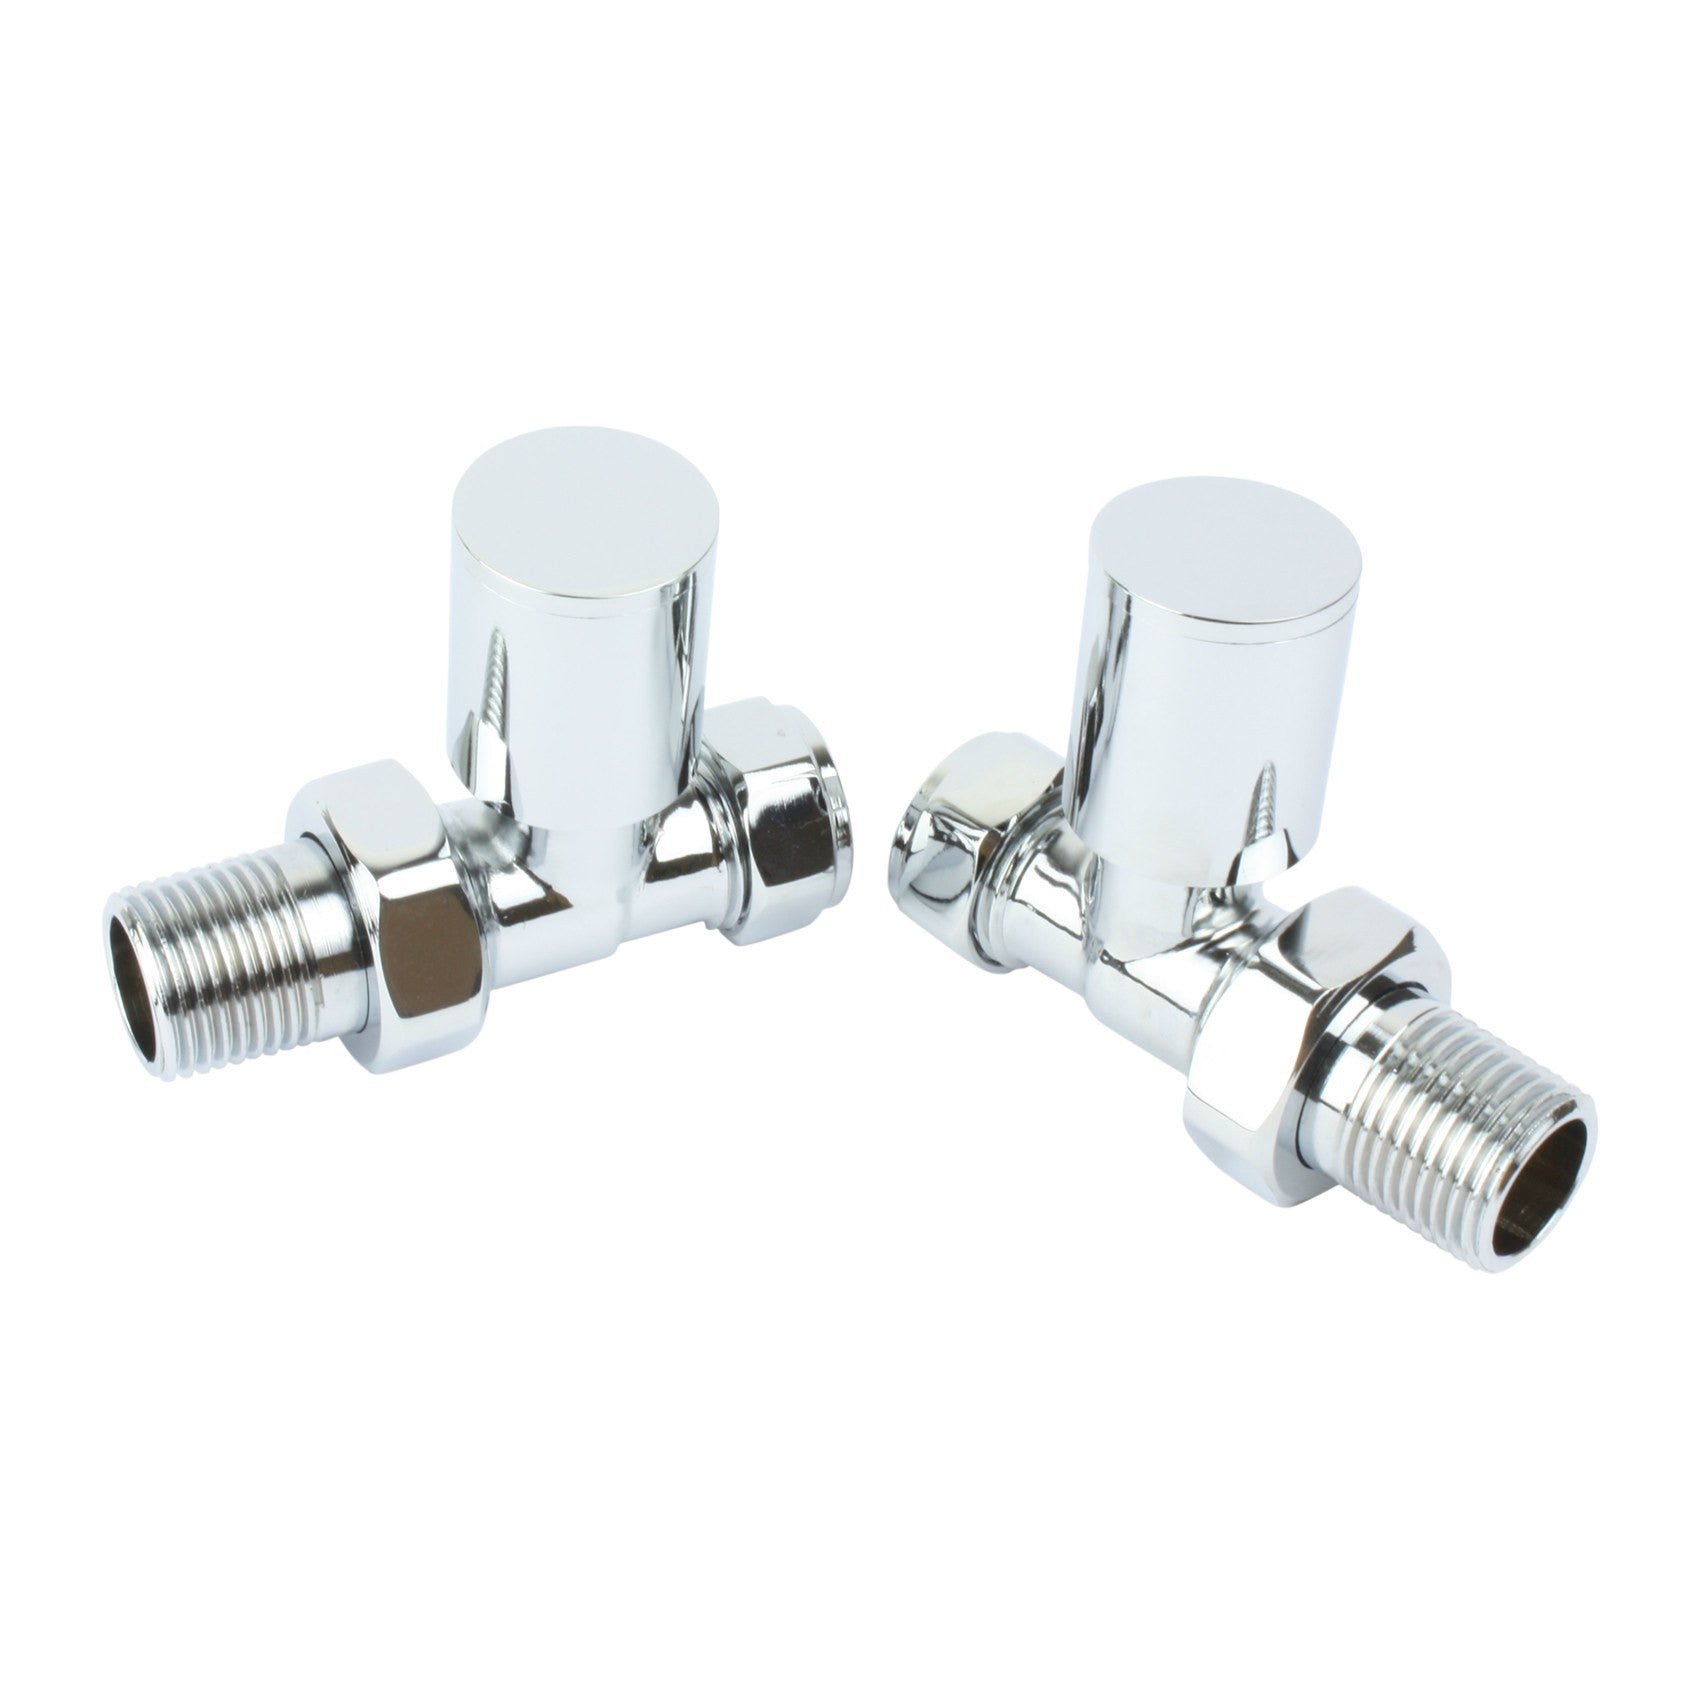 Sparkling Chrome Mini Straight Valves For Wall Pipes